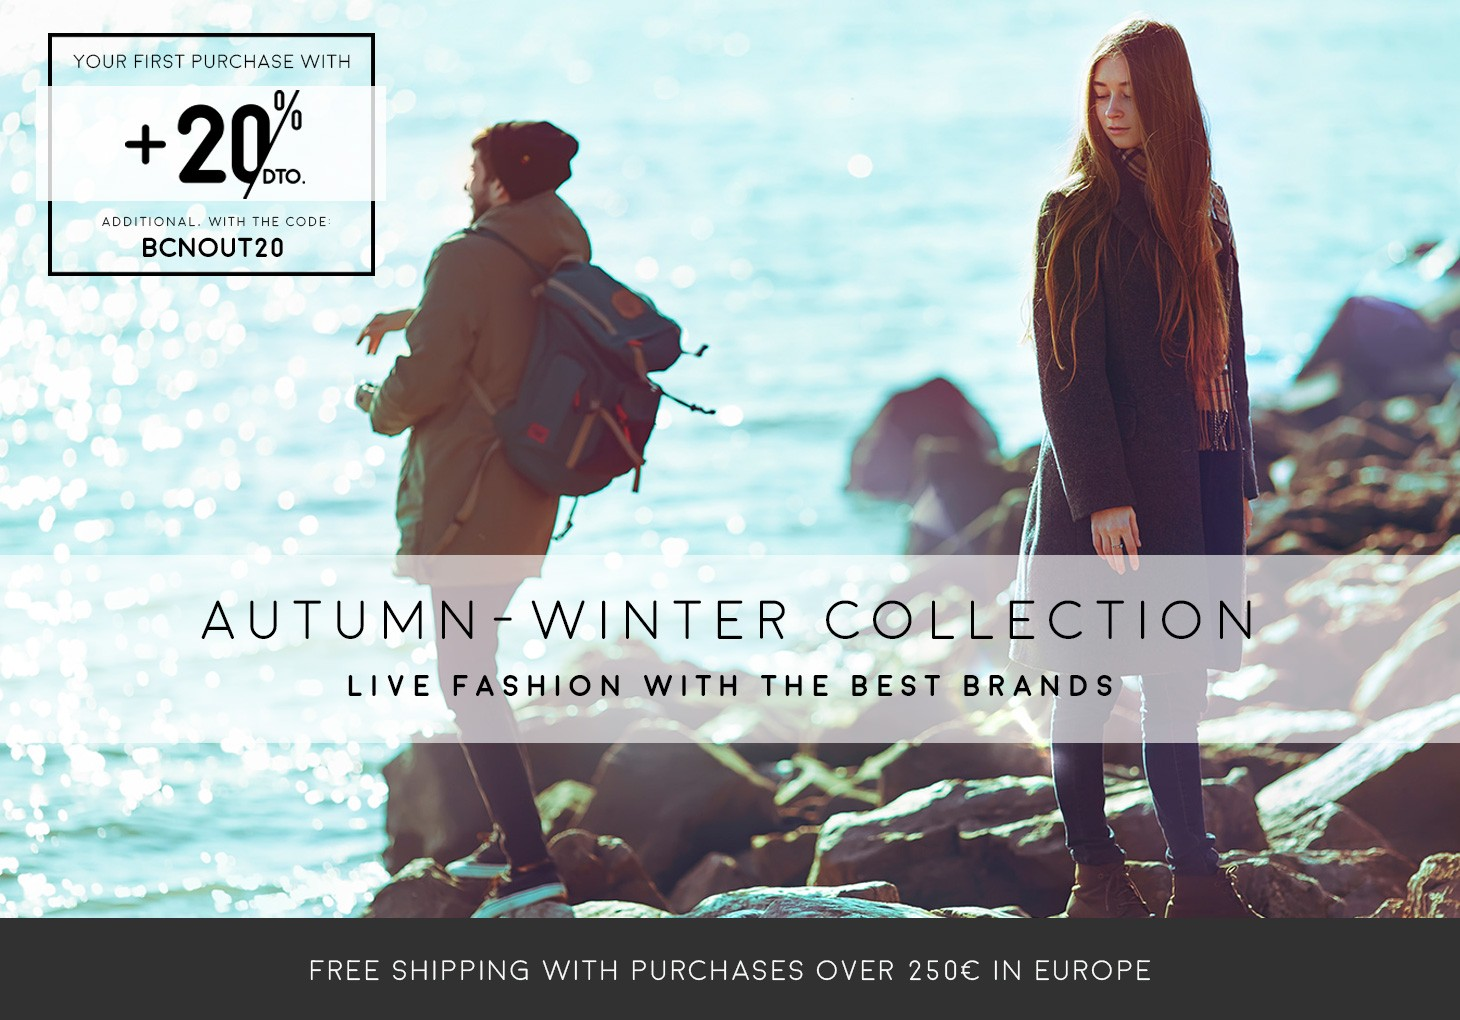 Barcelona Outlet - Autumn Winter collection